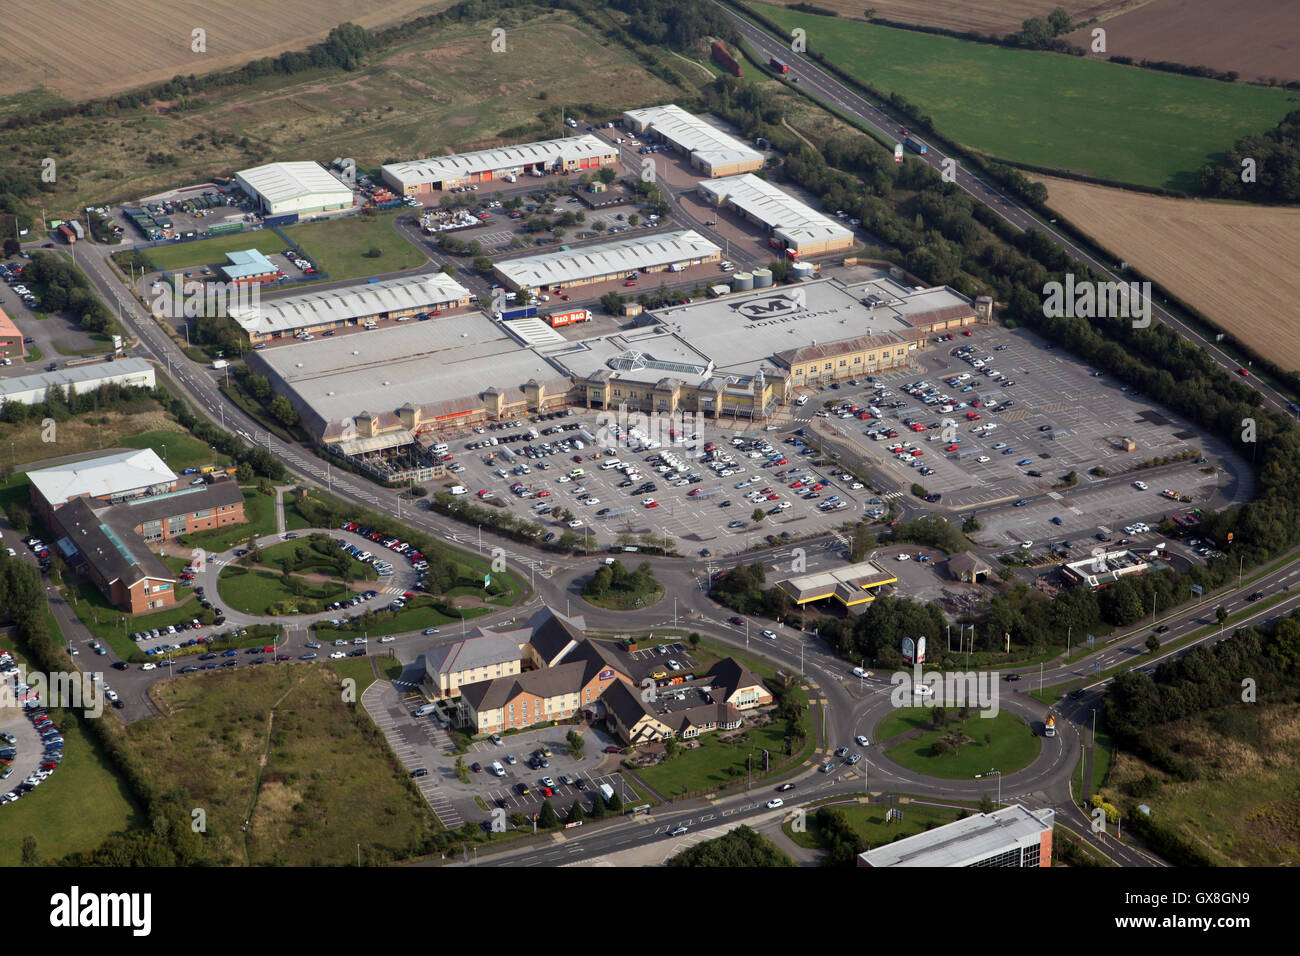 aerial view of the Morrisons superstore supermarket on the east side of Darlington, County Durham, UK - Stock Image